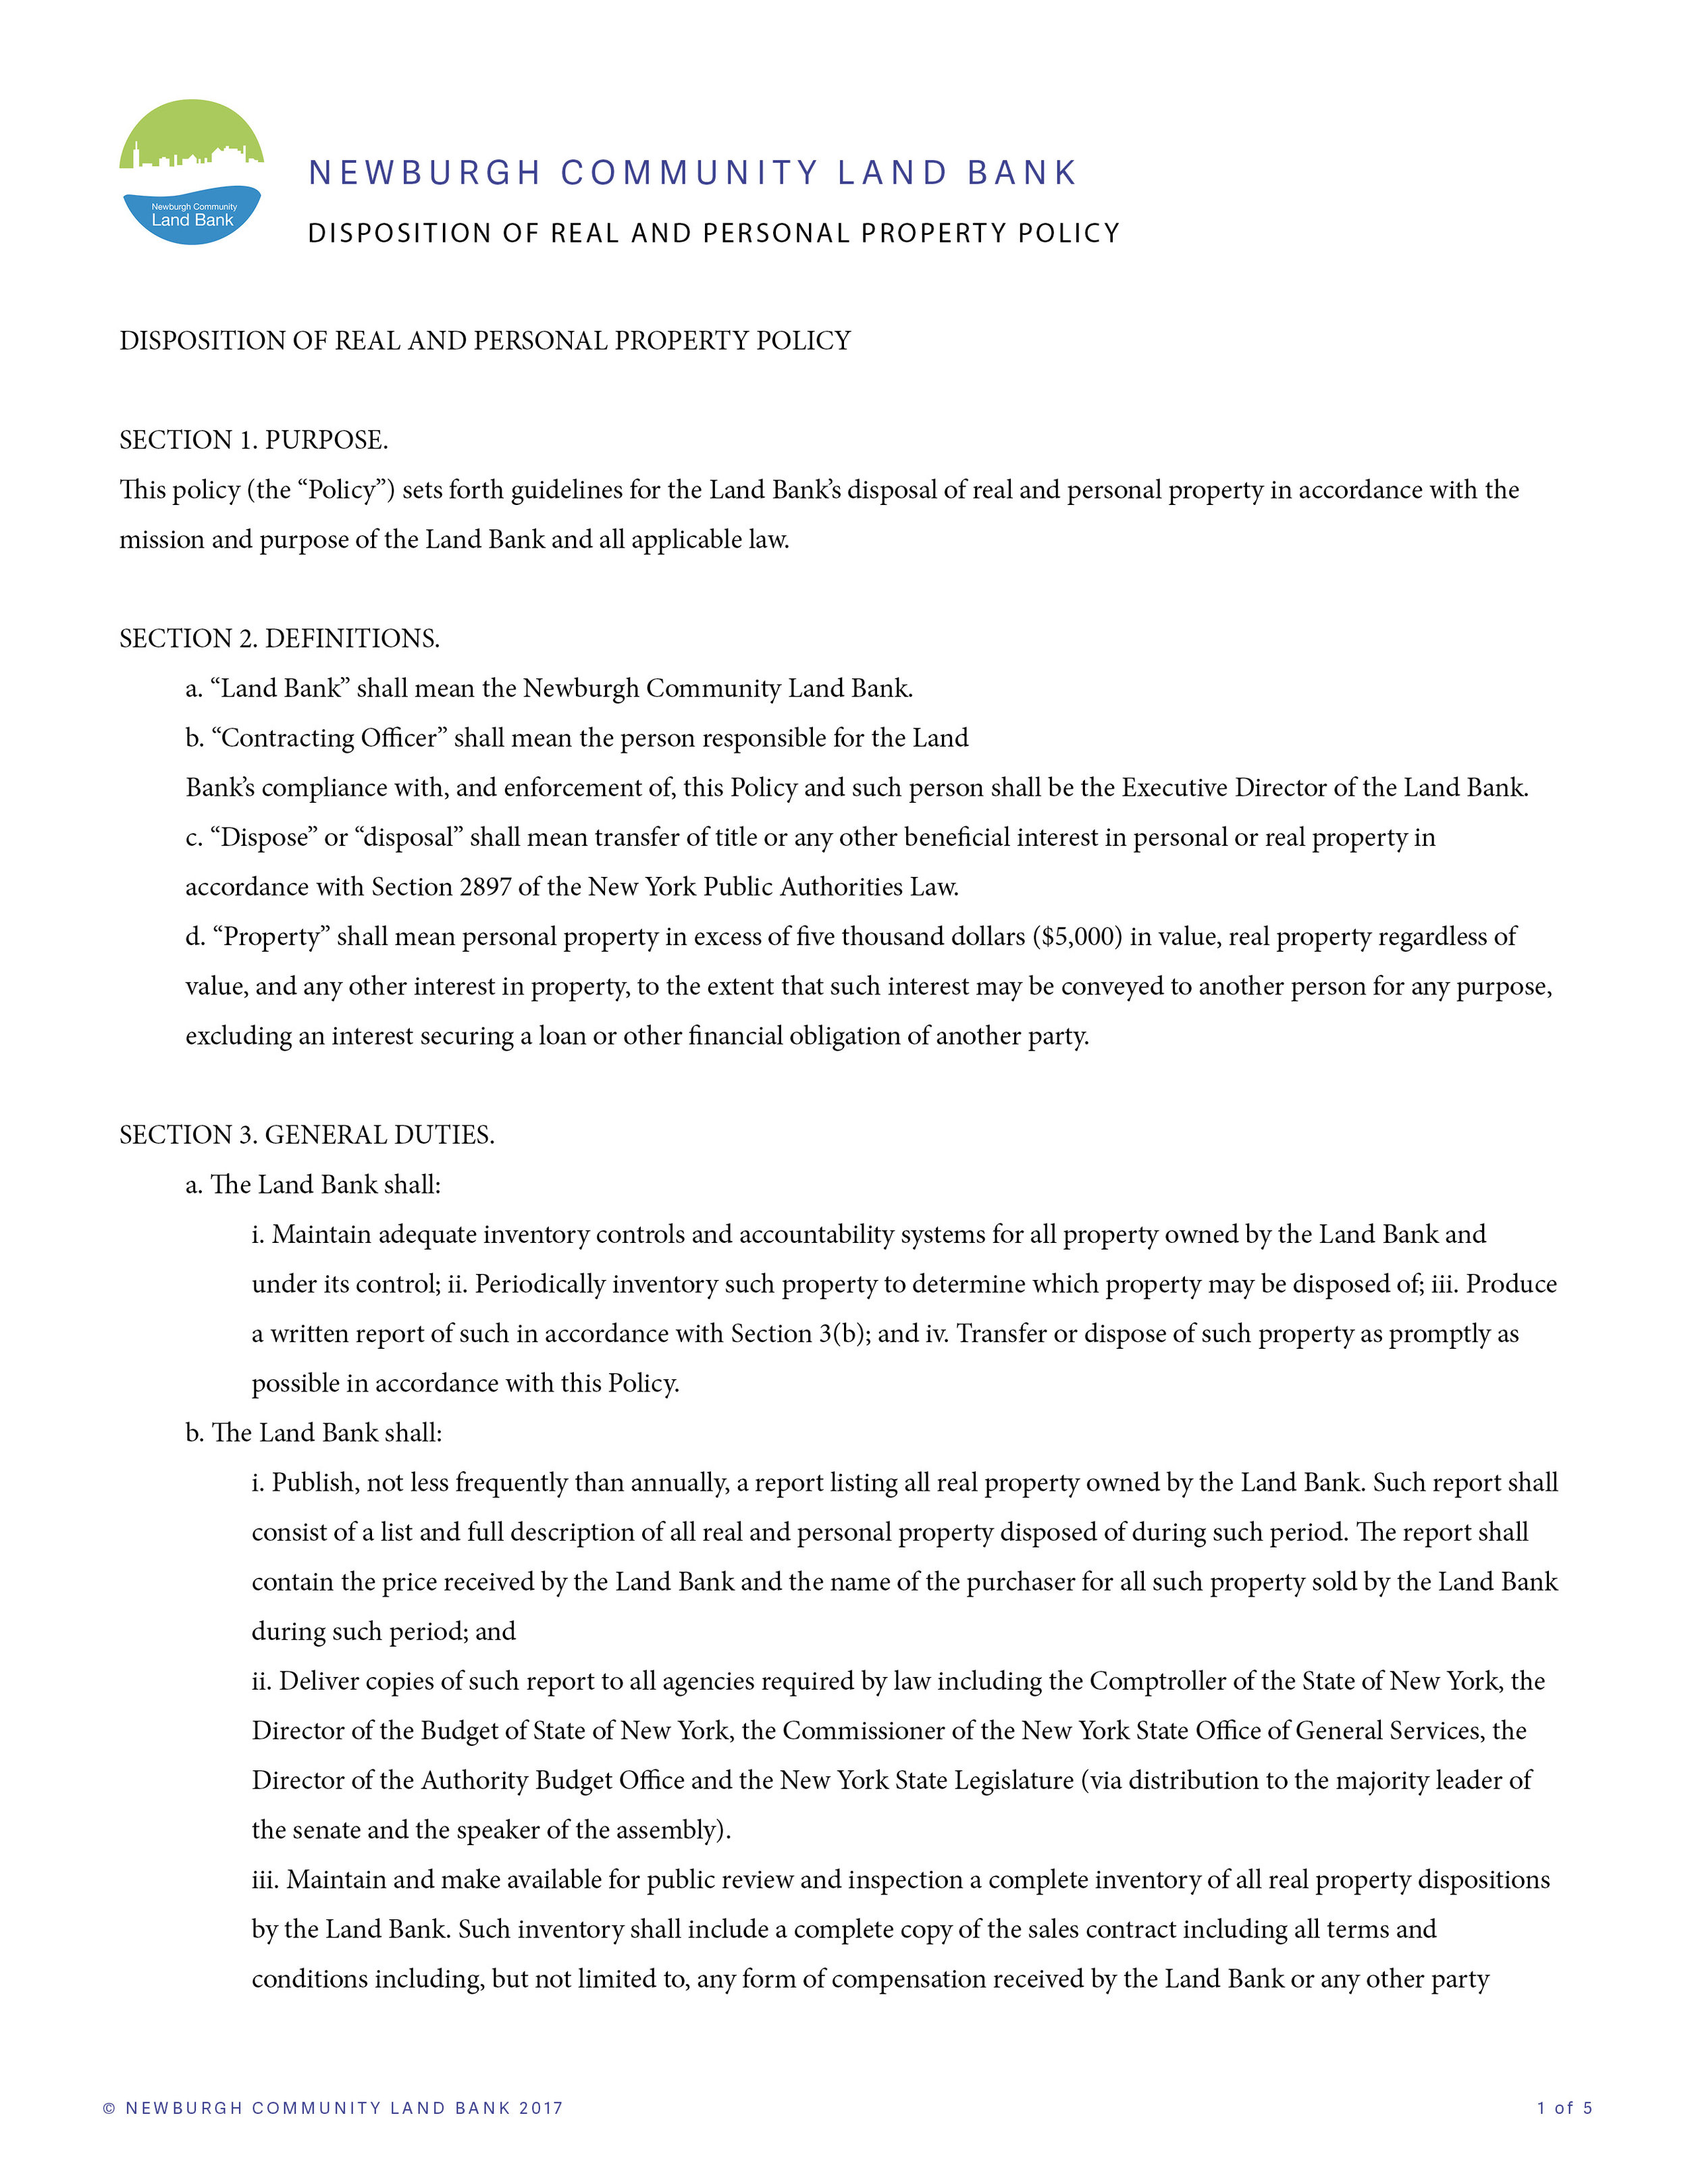 NCLB Disposition Policy1.jpg